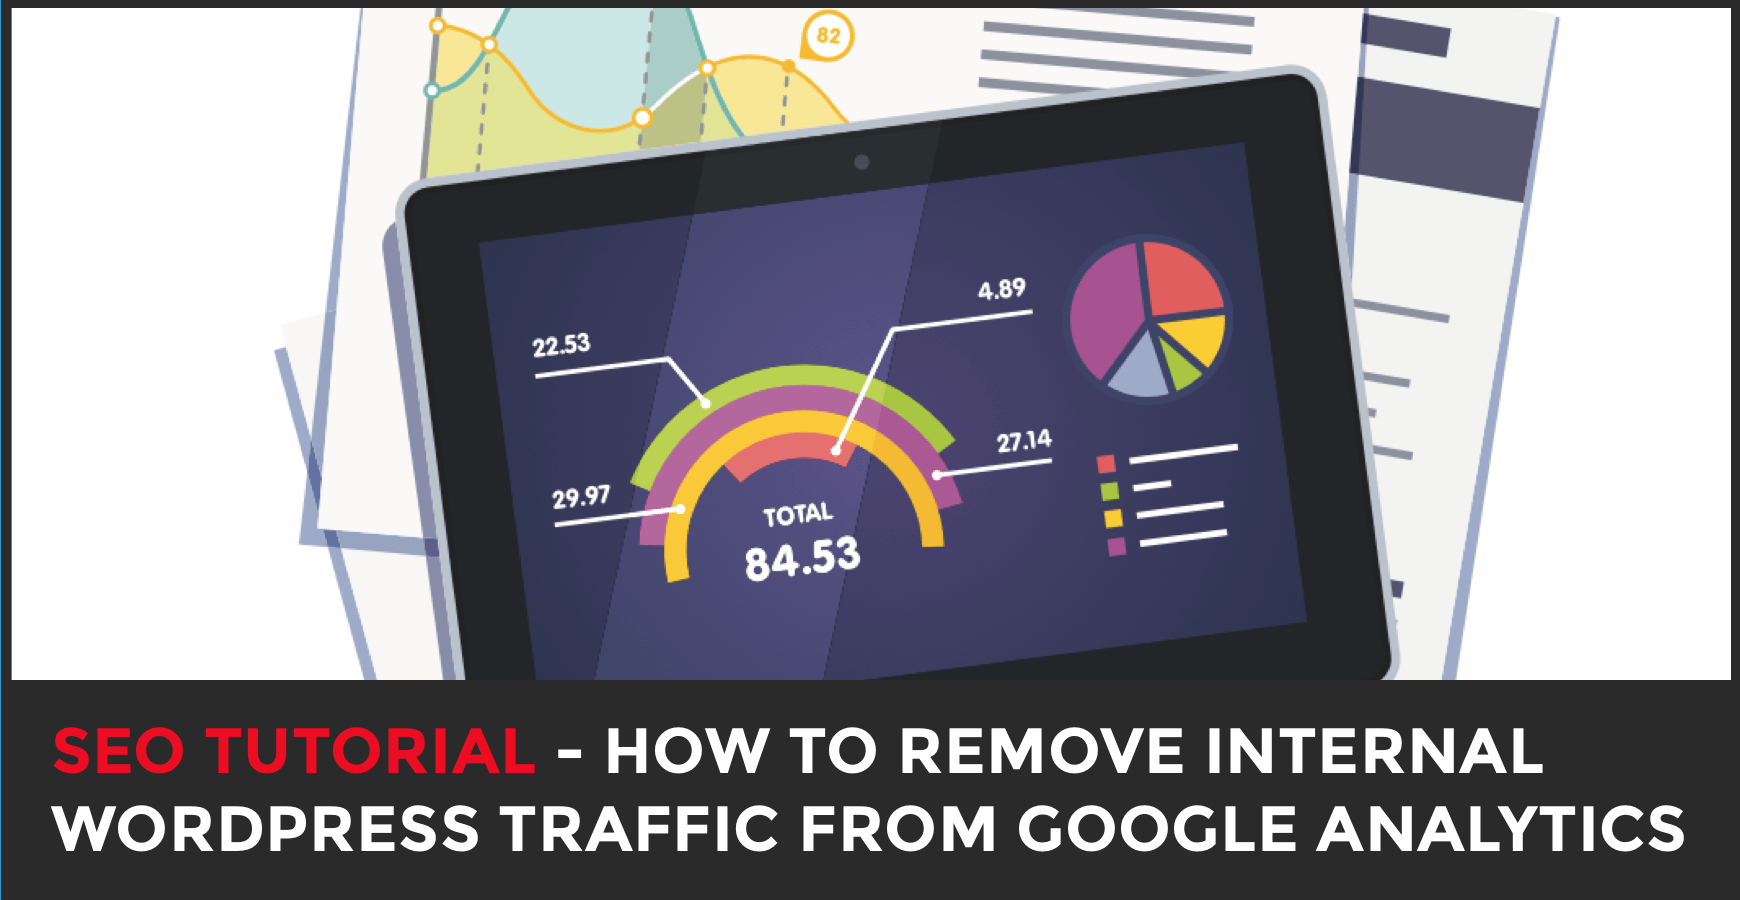 How to remove internal WordPress traffic from Google Analytics